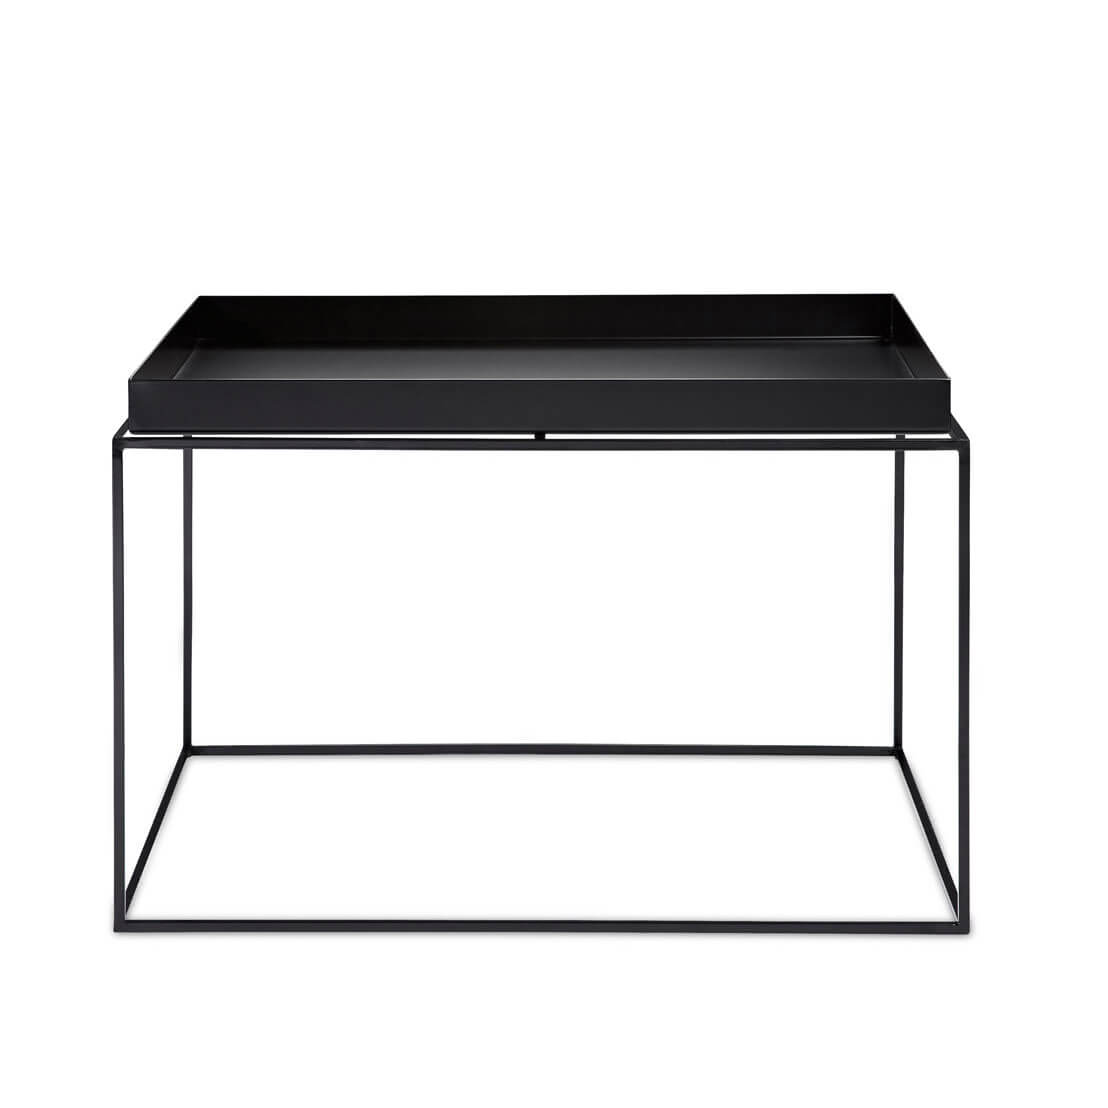 HAY – Tray Coffee Table Beistelltisch – Black